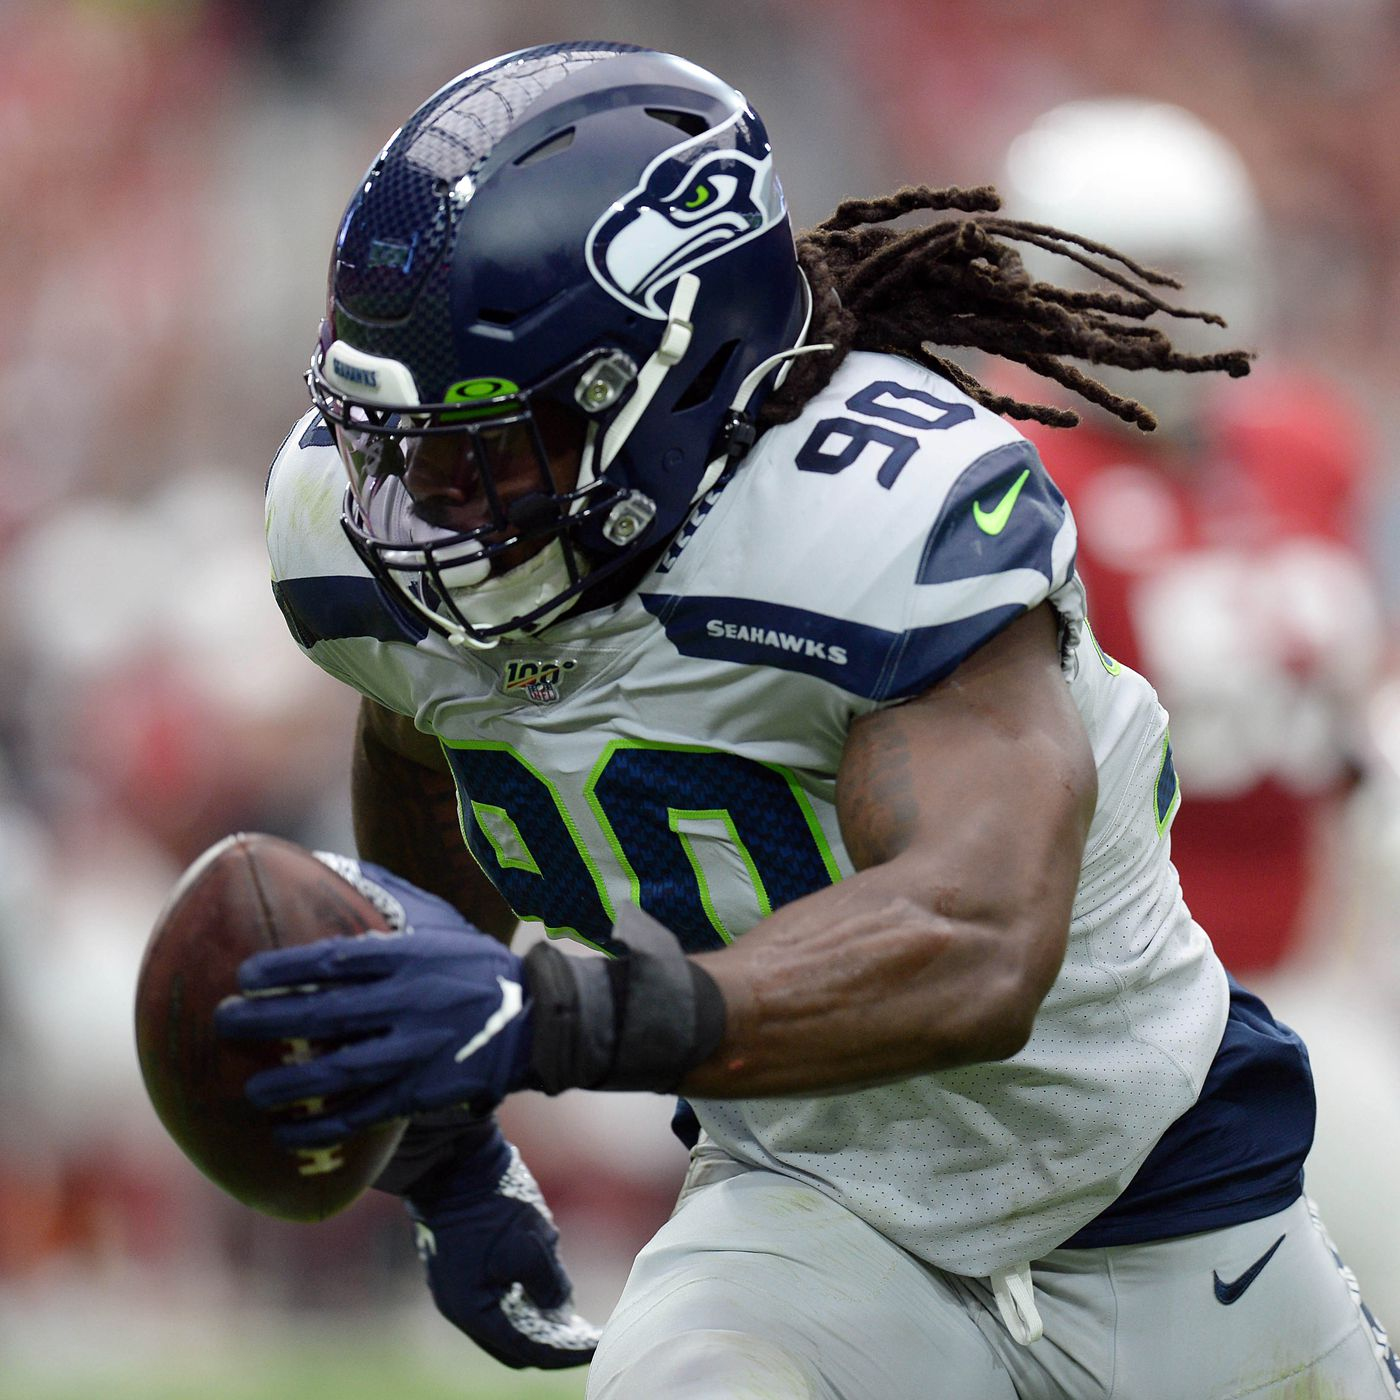 Seahawks 27 Cardinals 10: Winners and Losers from an easy Seattle ...